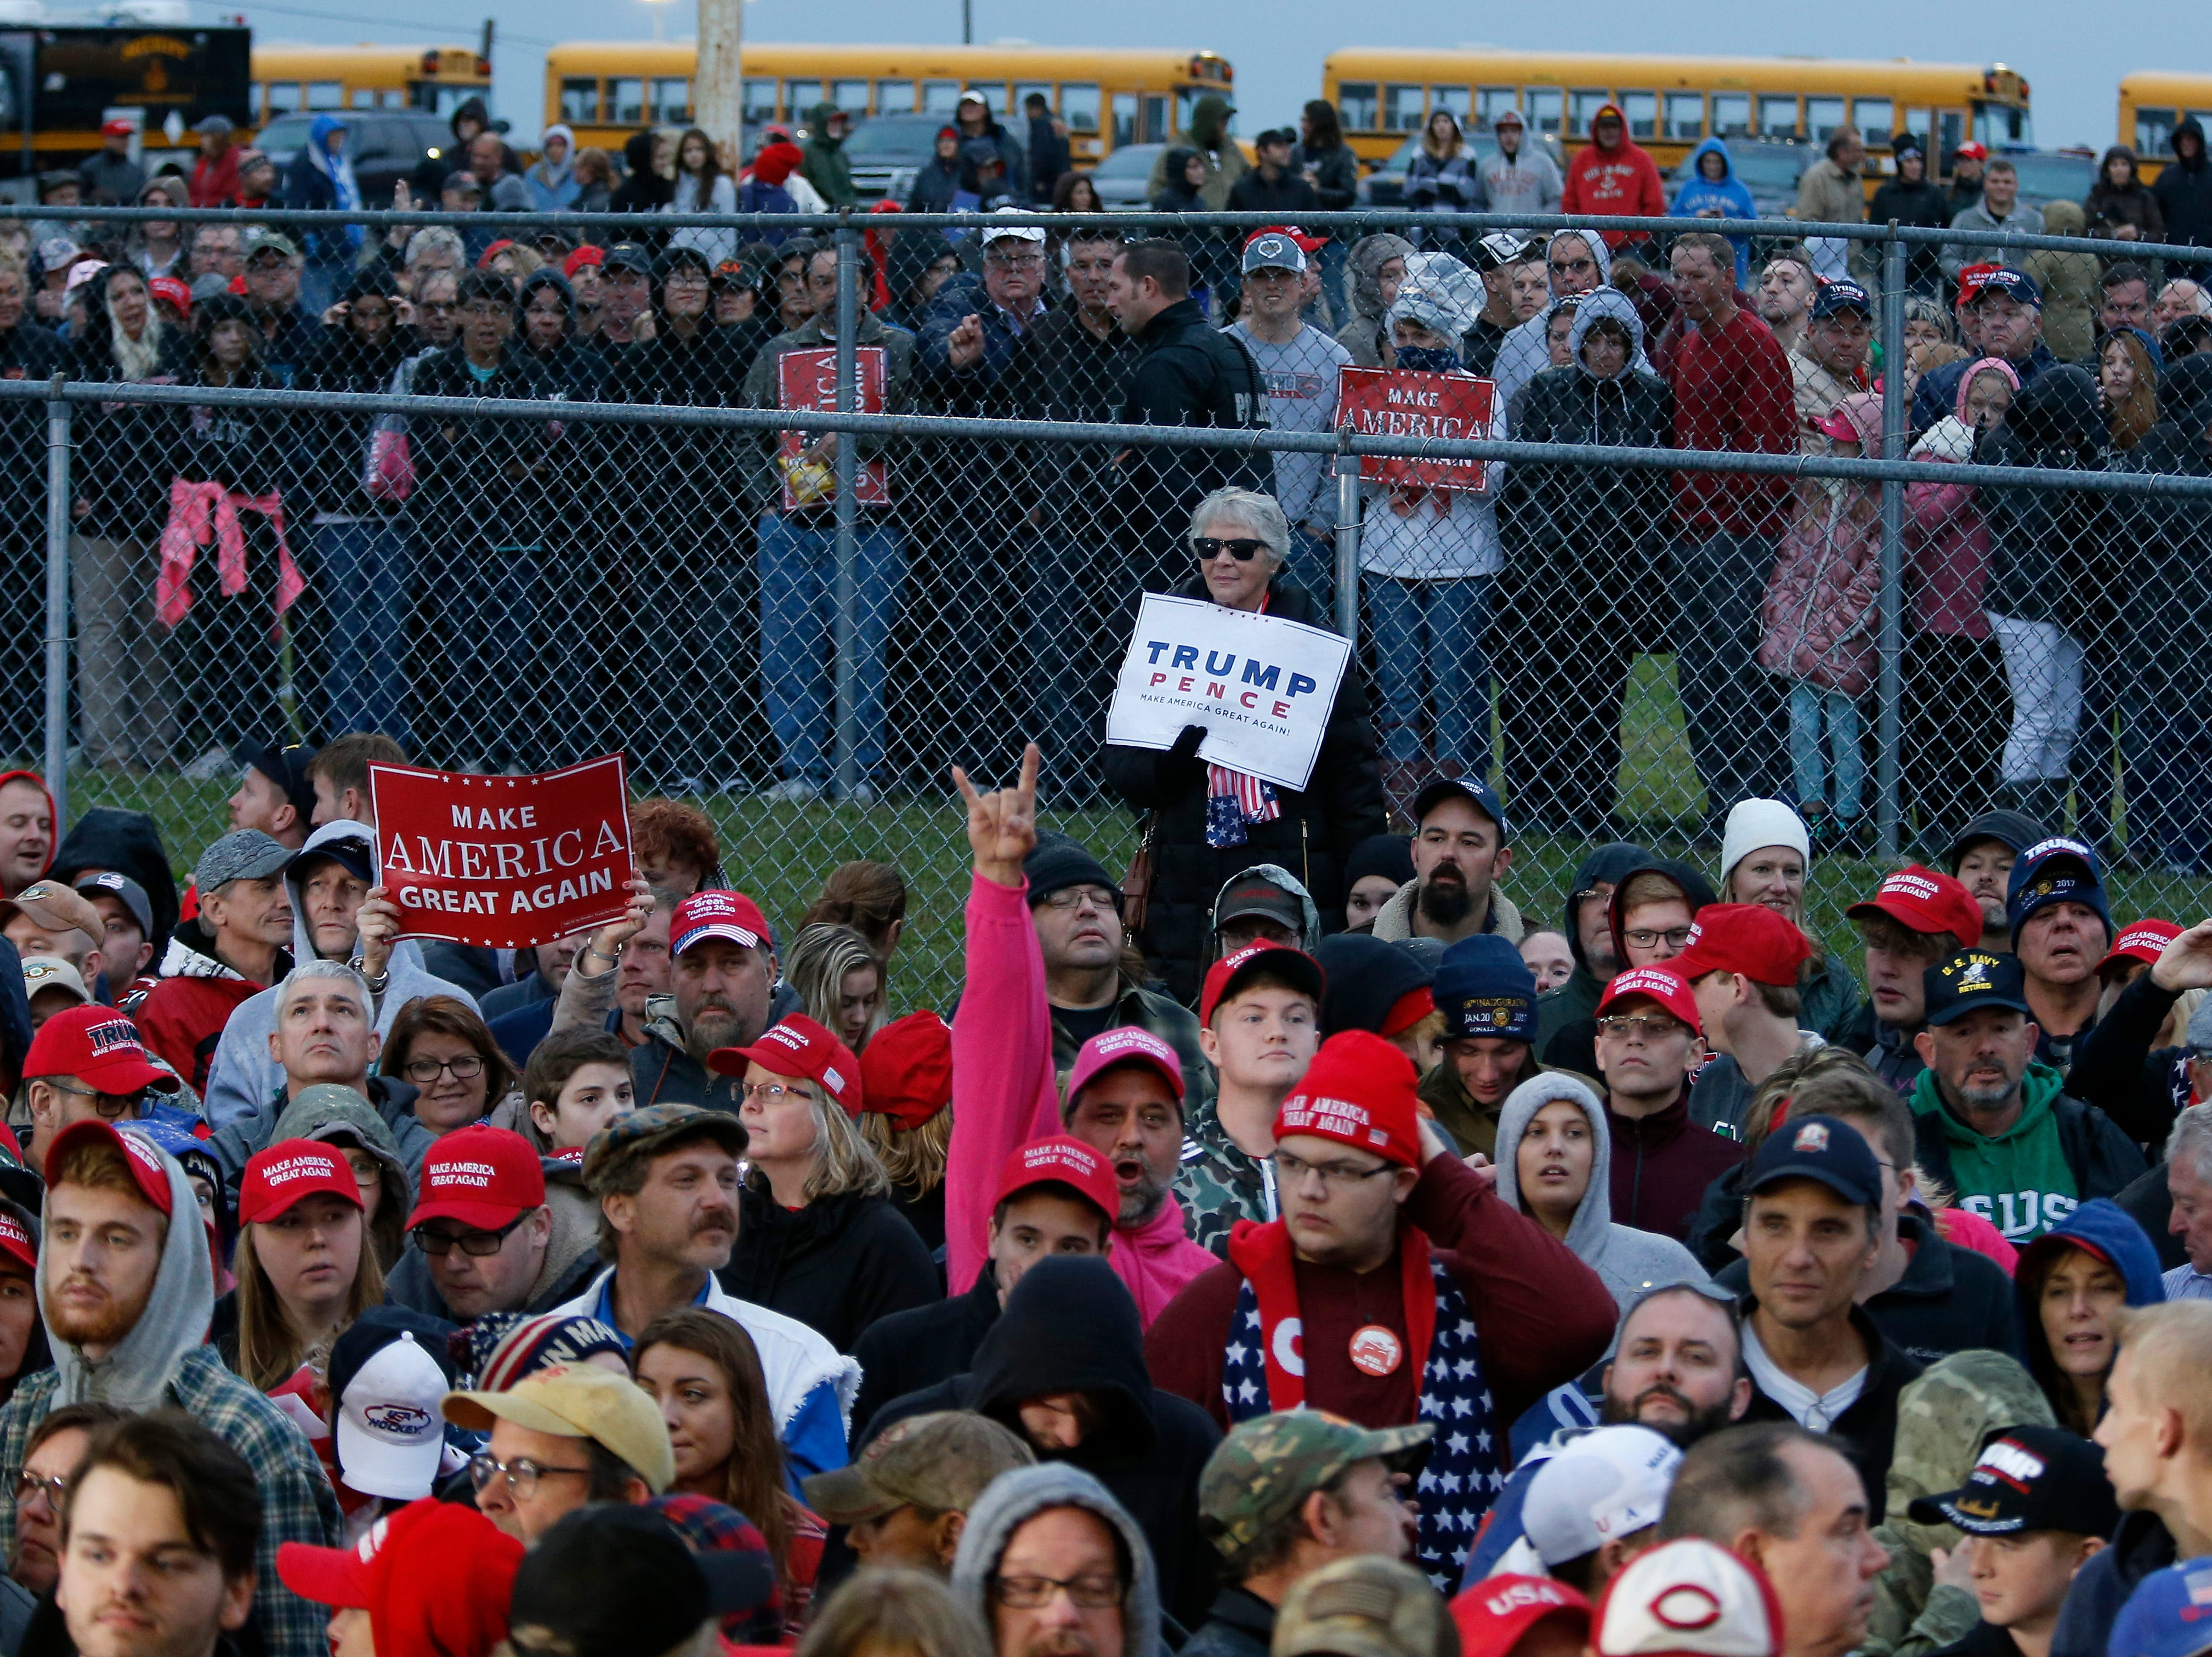 Supports gather outside the shelter as they wait for the arrival of President Donald Trump during a Make America Great Again rally at the warren County Fair Grounds in Lebanon, Ohio, on Friday, Oct. 12, 2018.